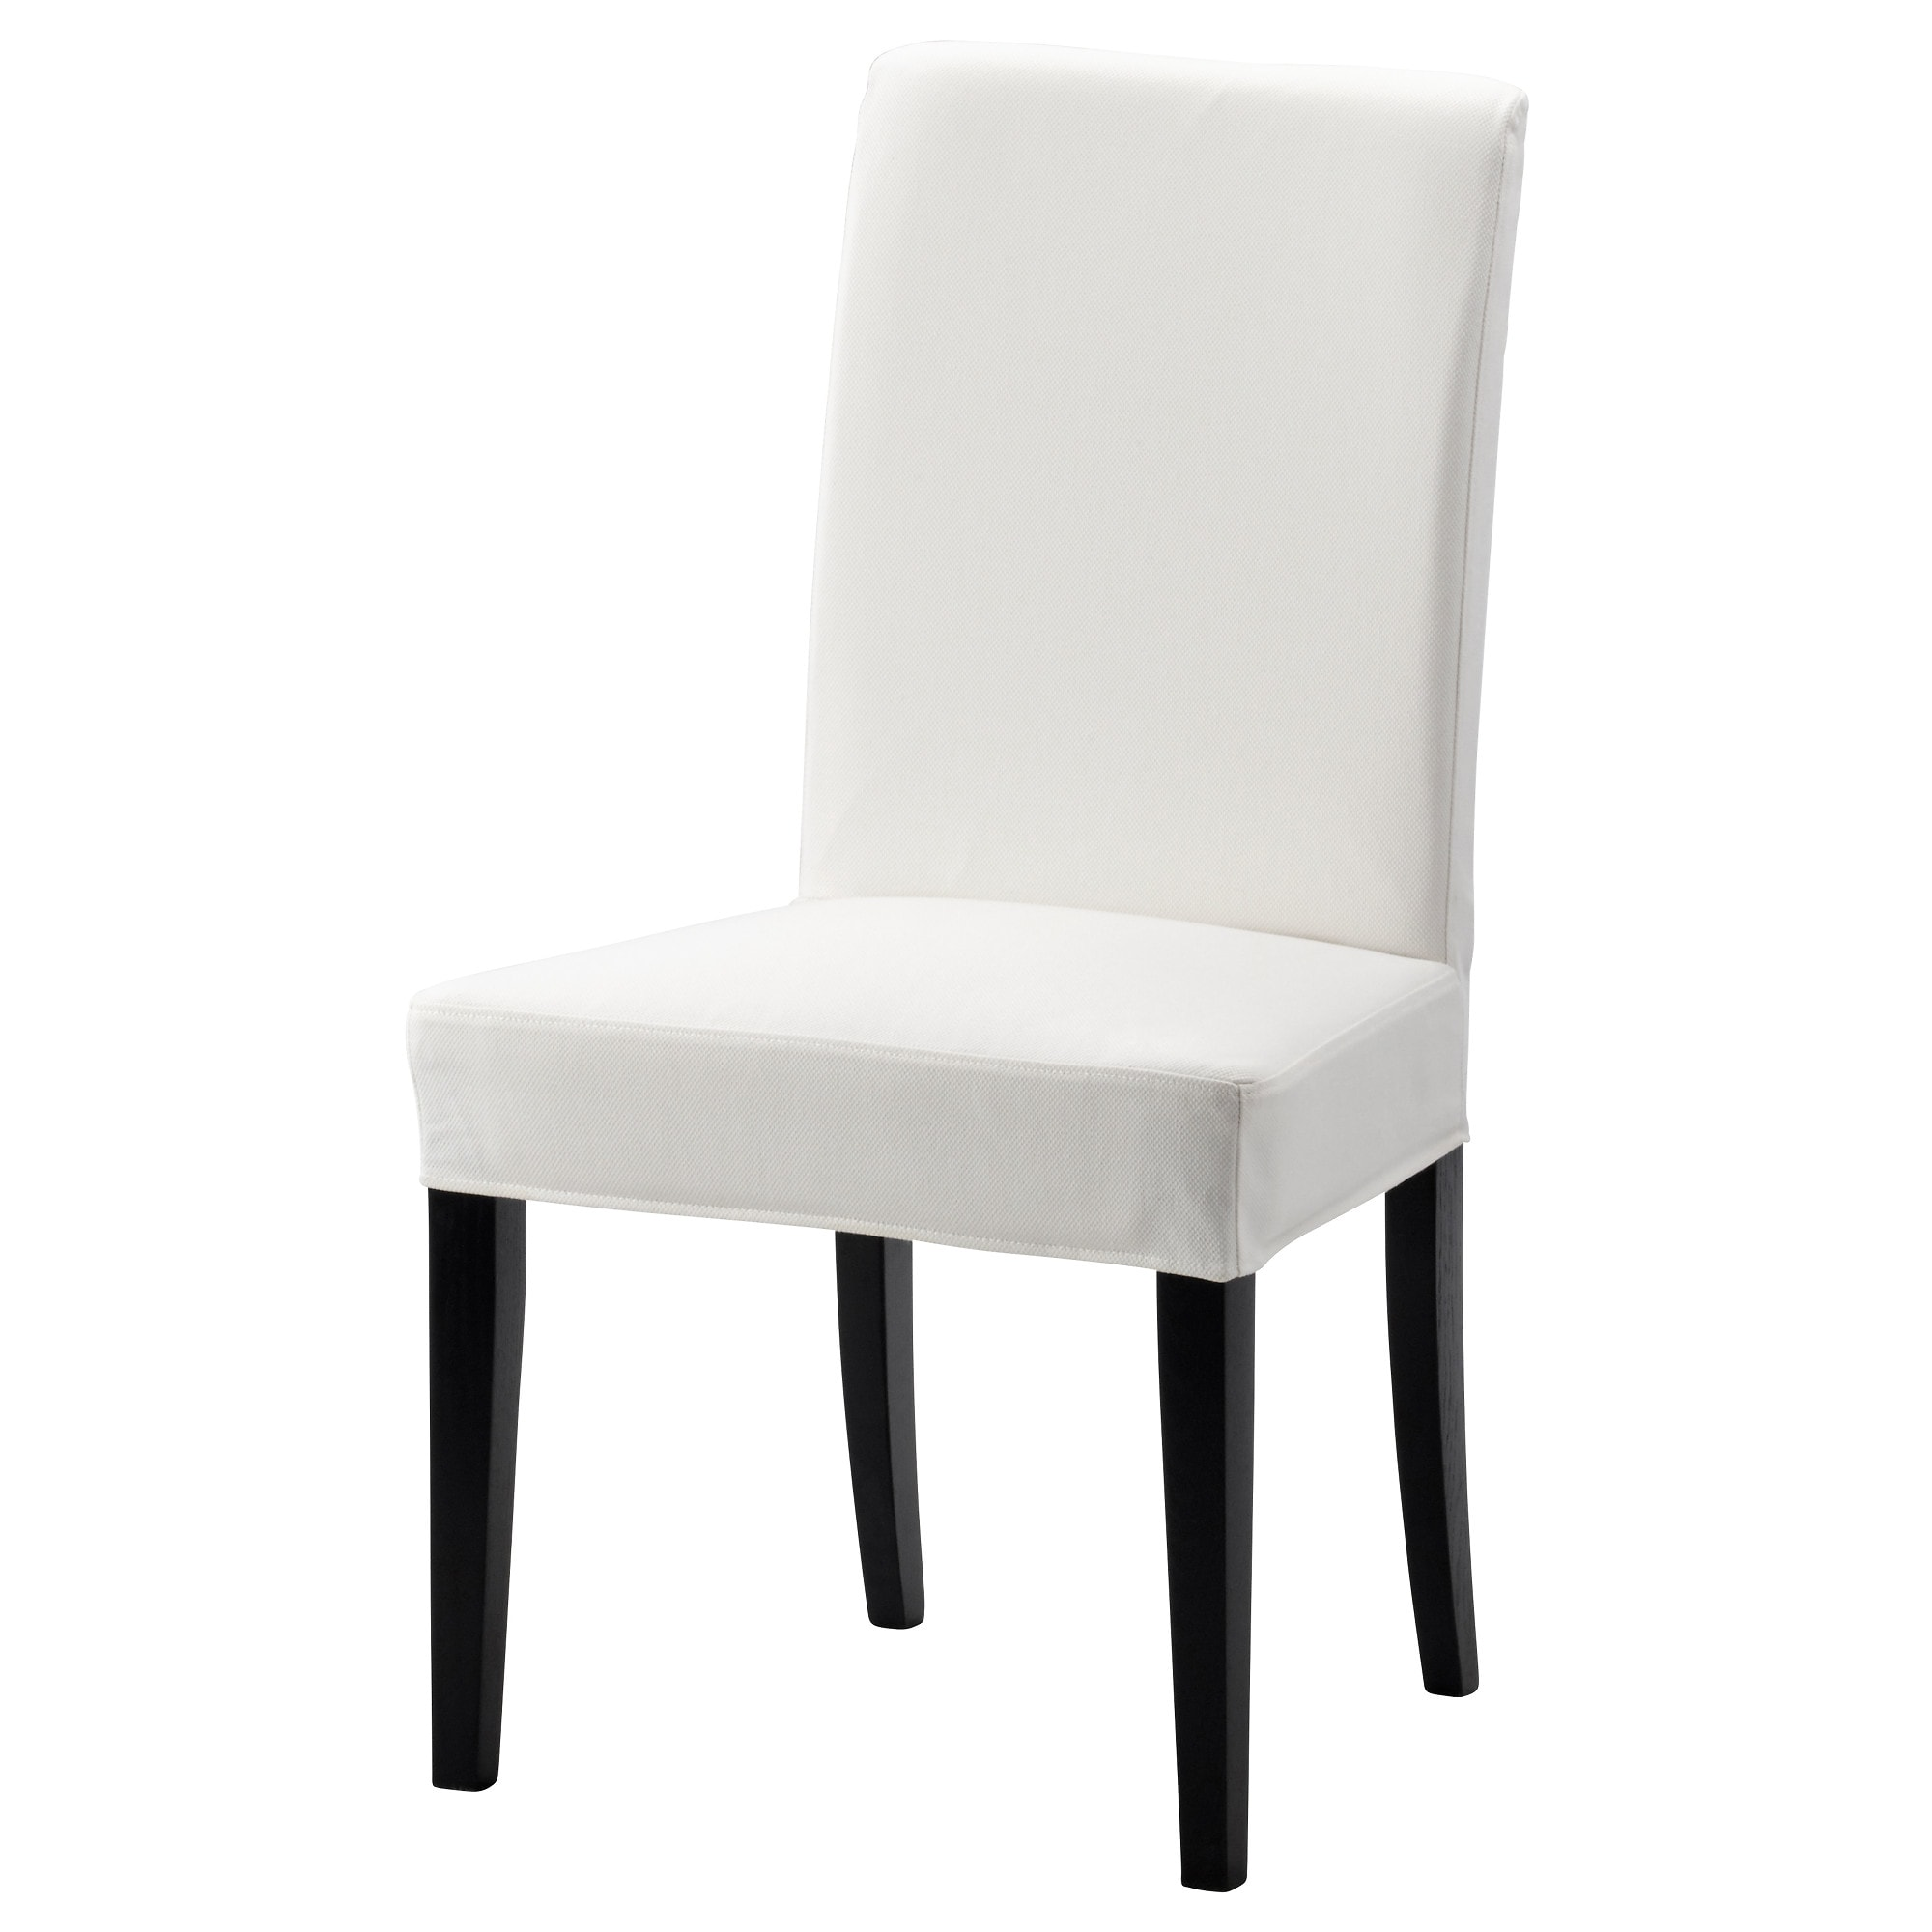 Black chair and white chair - Henriksdal Chair Brown Black Gr Sbo White Tested For 243 Lb Width